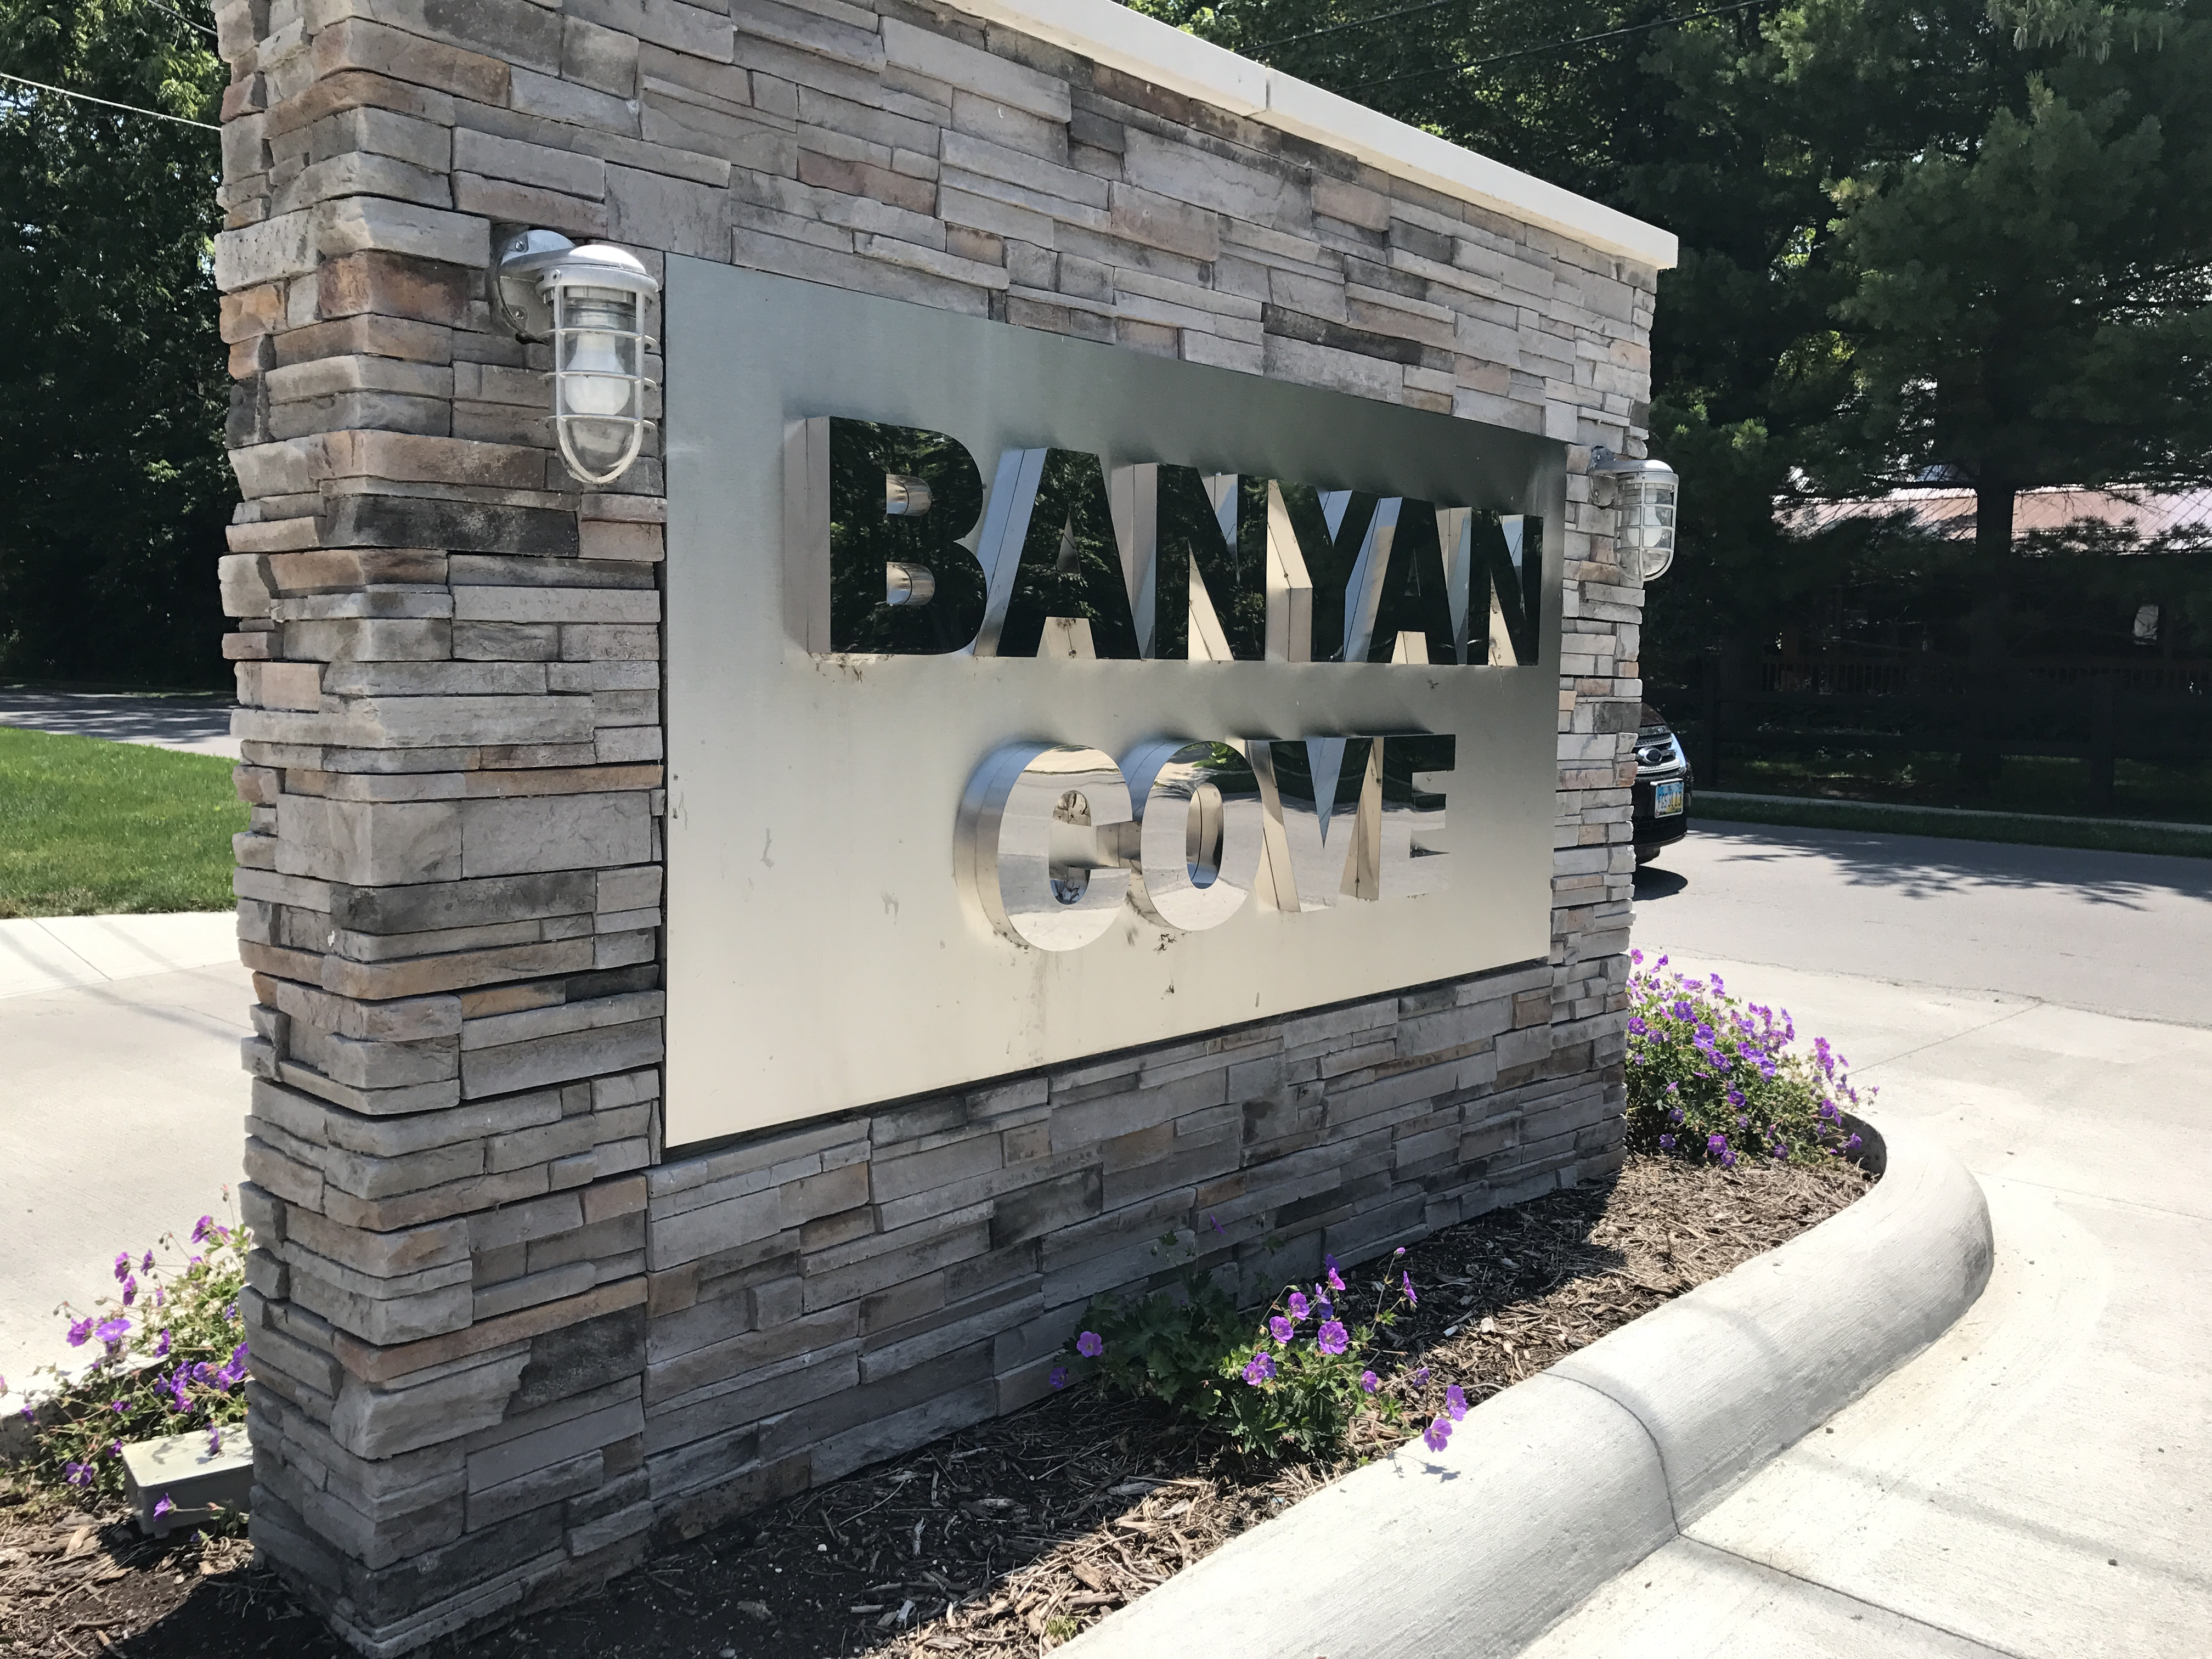 EPISODE I: Real Estate The Banyan Cove Phase I